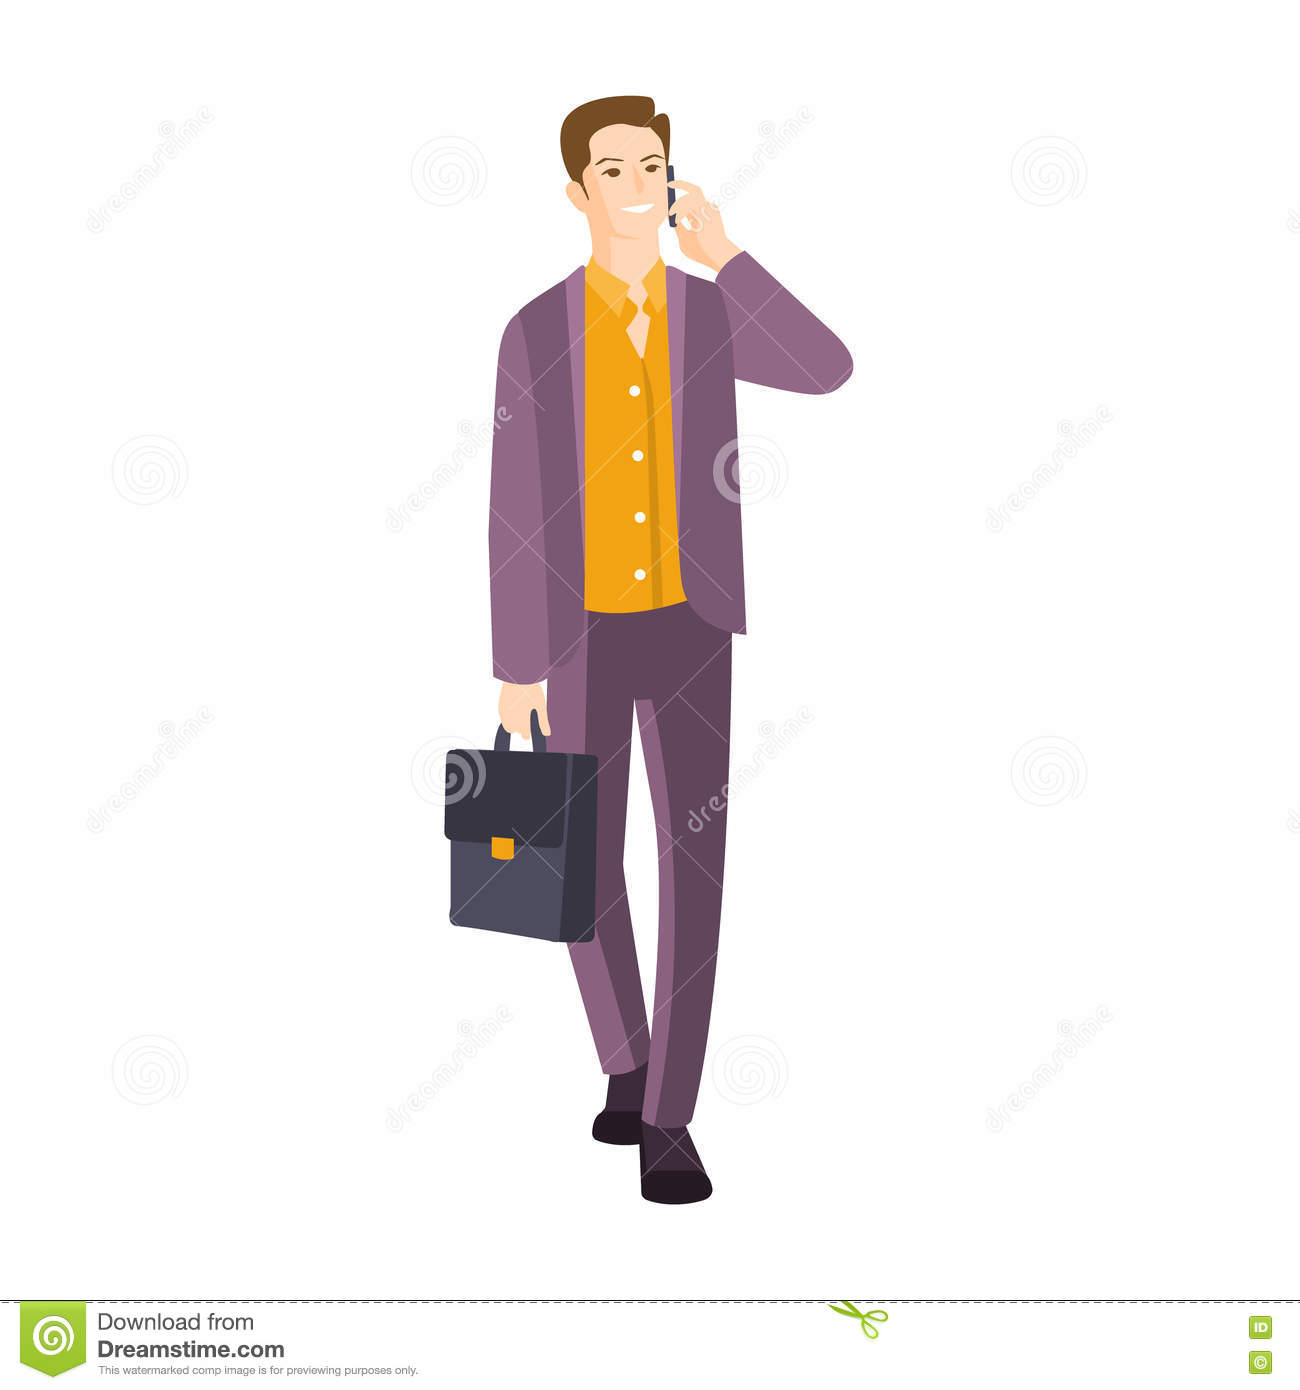 Clothing Cartoons Illustrations Vector Stock Images 94378 Pictures To Download From